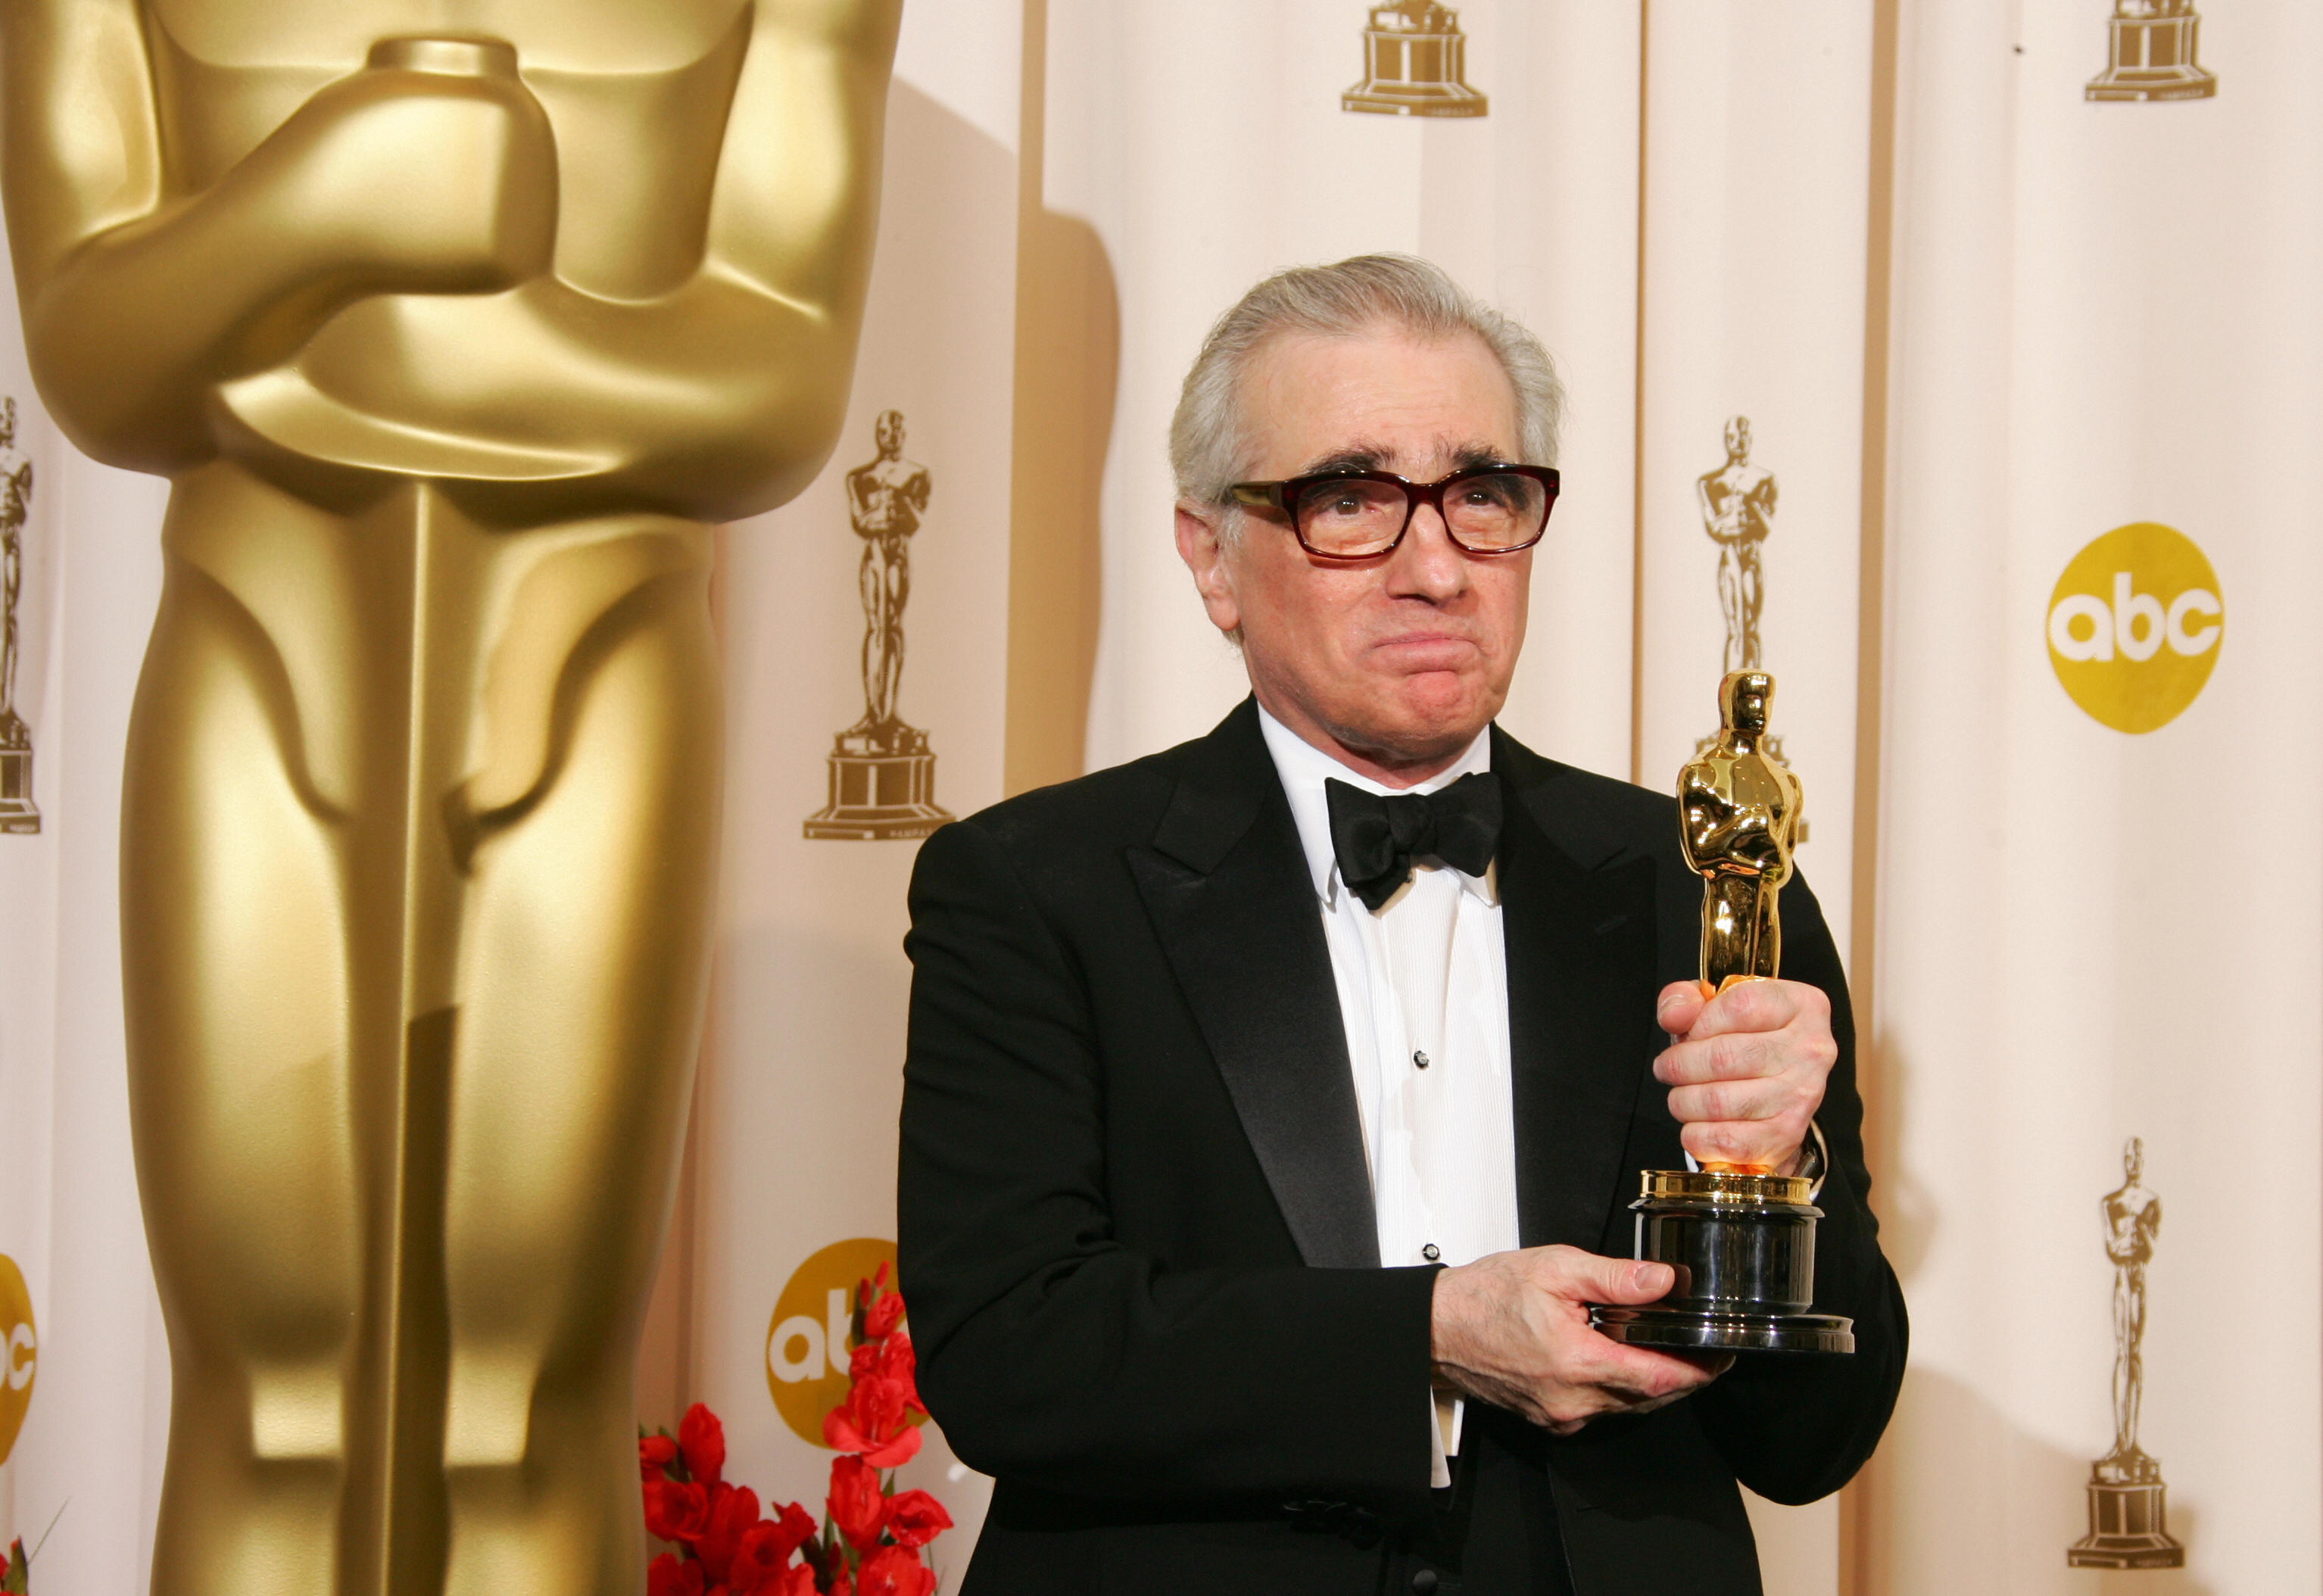 Martin Scorsese's net worth was already high before he won an Oscar for best director.